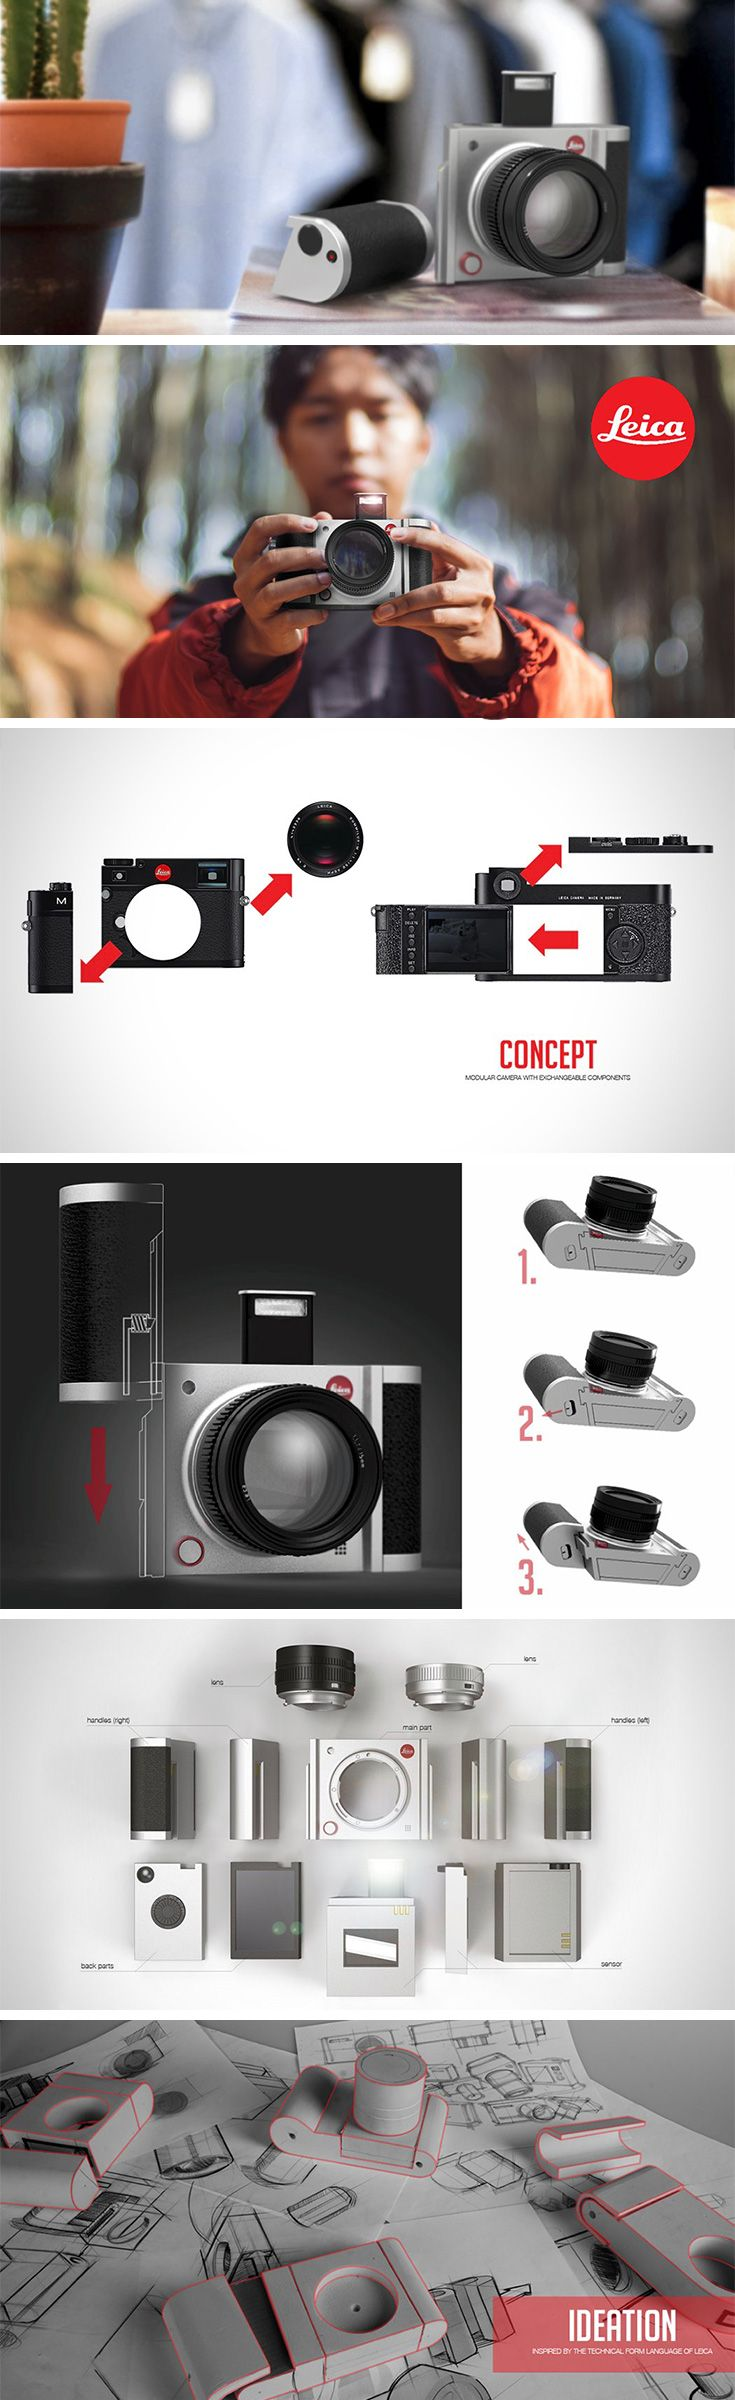 The Leica U camera concept explores modularity as an option to defeat obsolescence. The modular system allow users to not only update their hardware infinitely, but to build it to their liking at the onset. Using a quick locking mechanism, individual components can be released and replaced in a jiffy. This also means that photographers can quickly and easily switch between photography styles without carrying around multiple cameras.